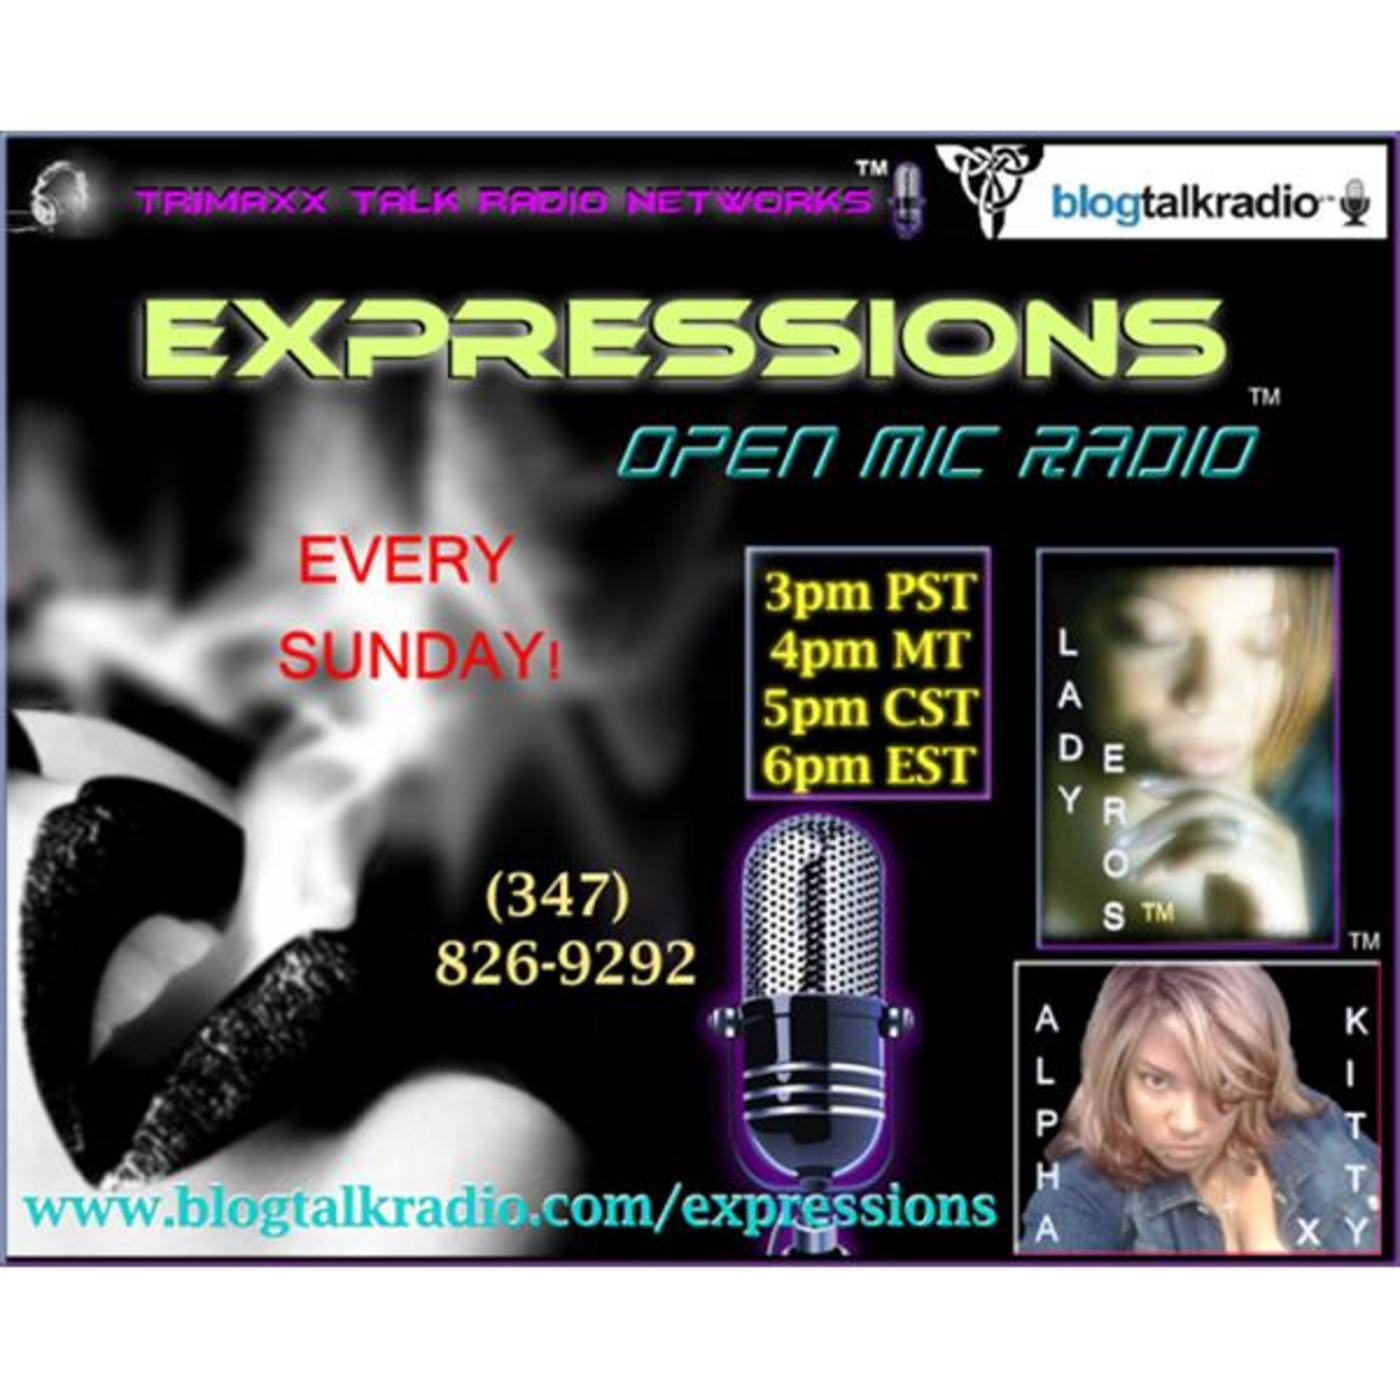 TTR NETWORKS - EXPRESSIONS OPEN MIC RADIO!